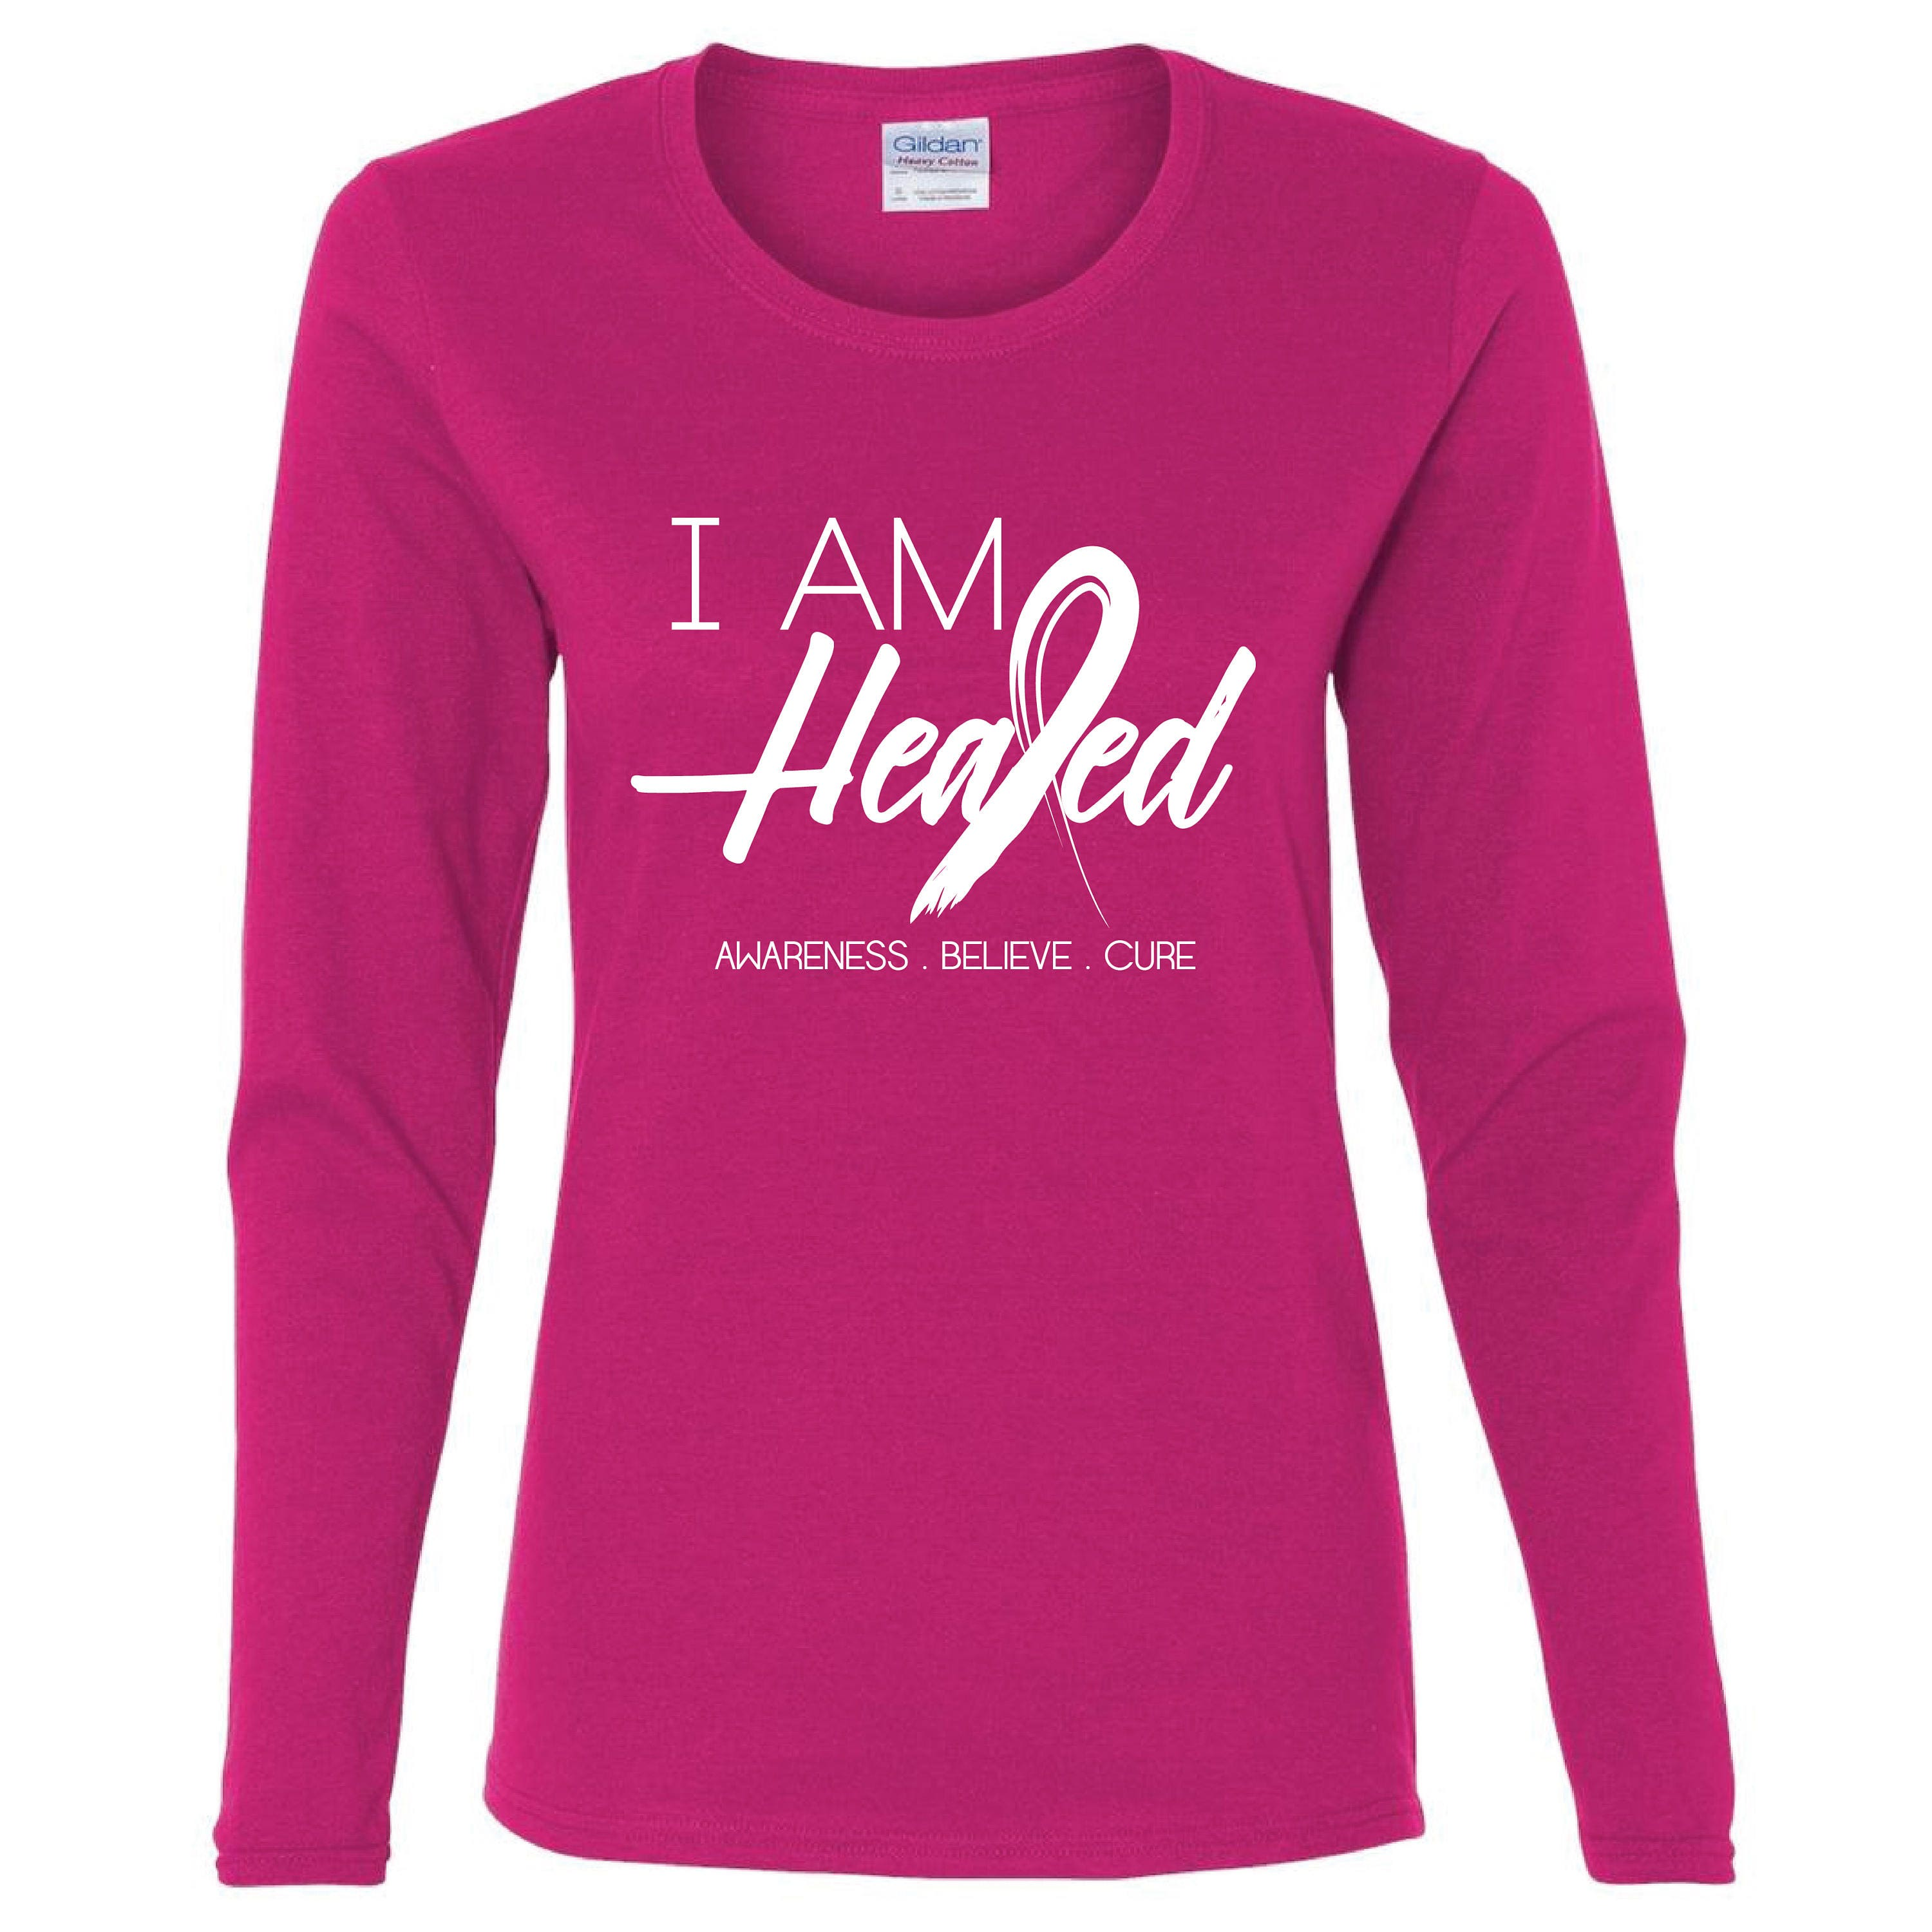 fee790b8 Breast Cancer Awareness T Shirt Images – Rockwall Auction